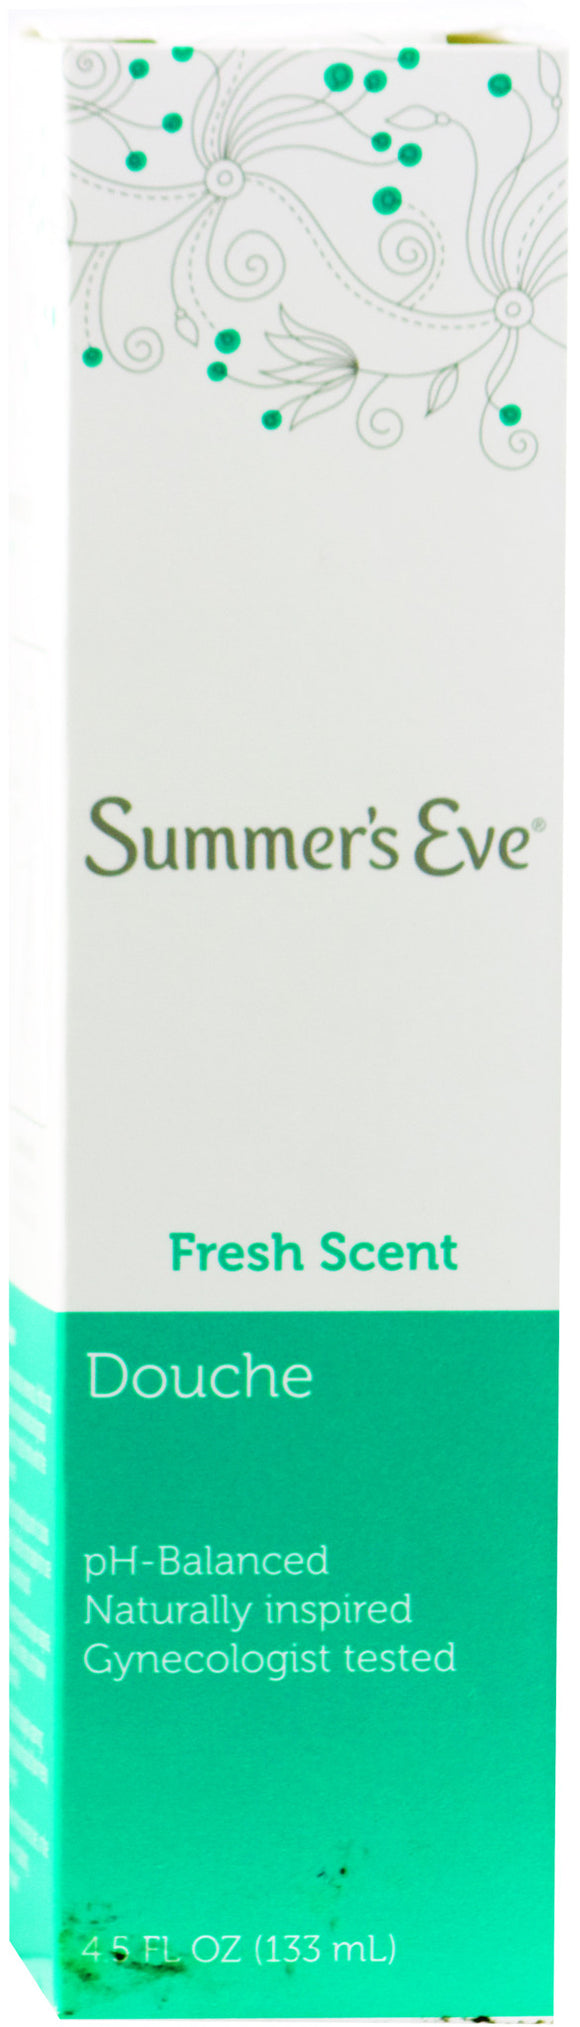 SUMMER'S EVE - FRESH SCENT